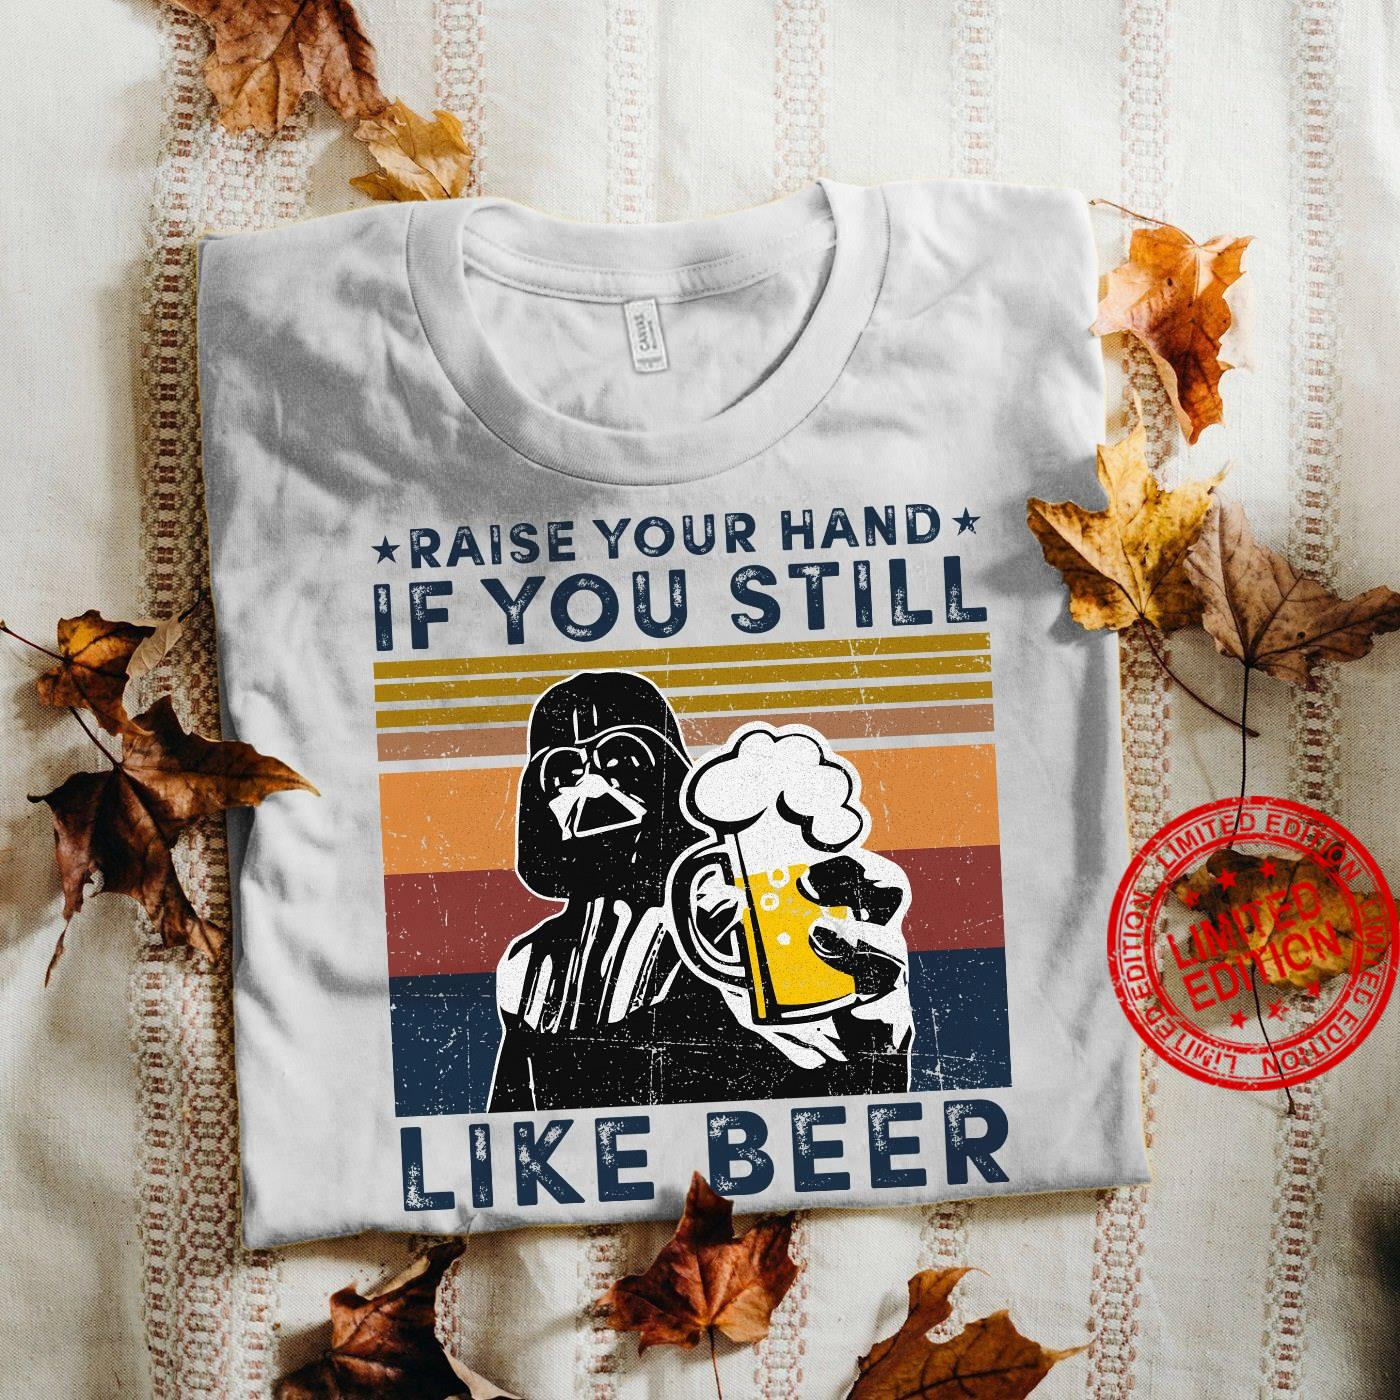 Raise your Hand If You Still Loke Beer Shirt